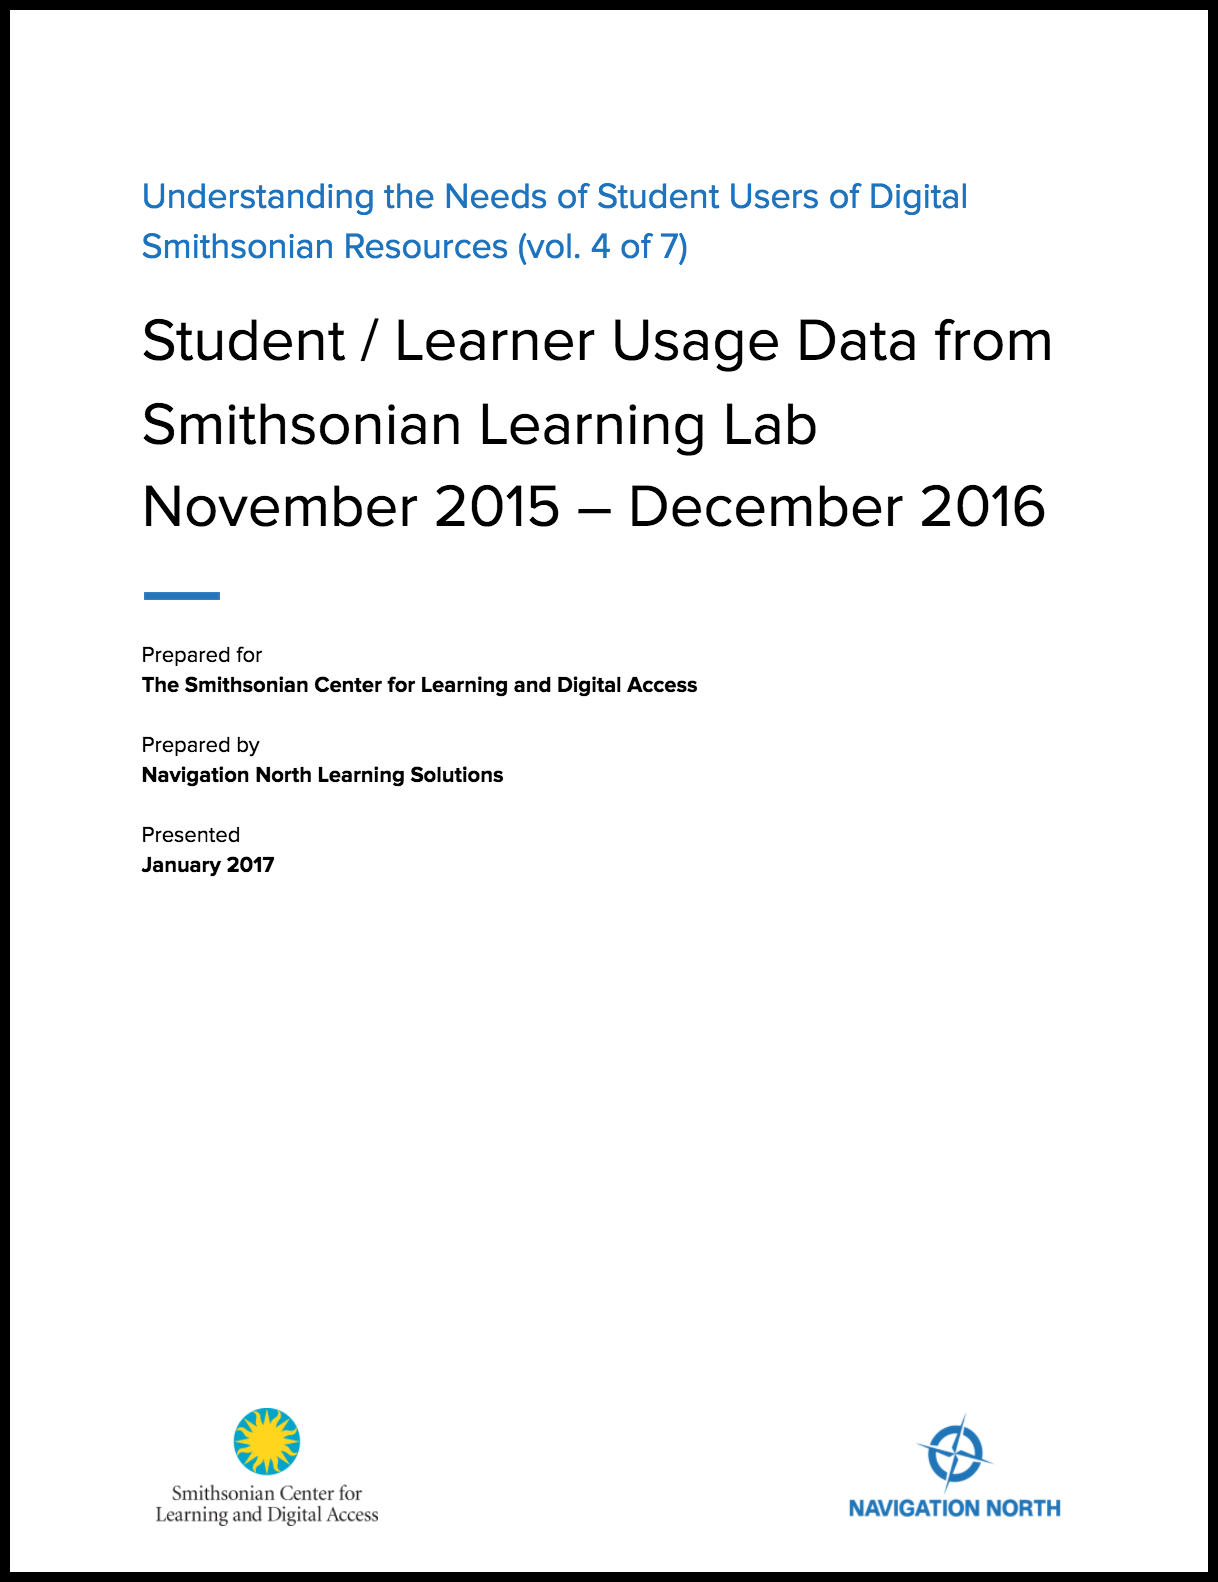 Student / Learner Usage Data from Smithsonian Learning Lab (November 2015 – December 2016)